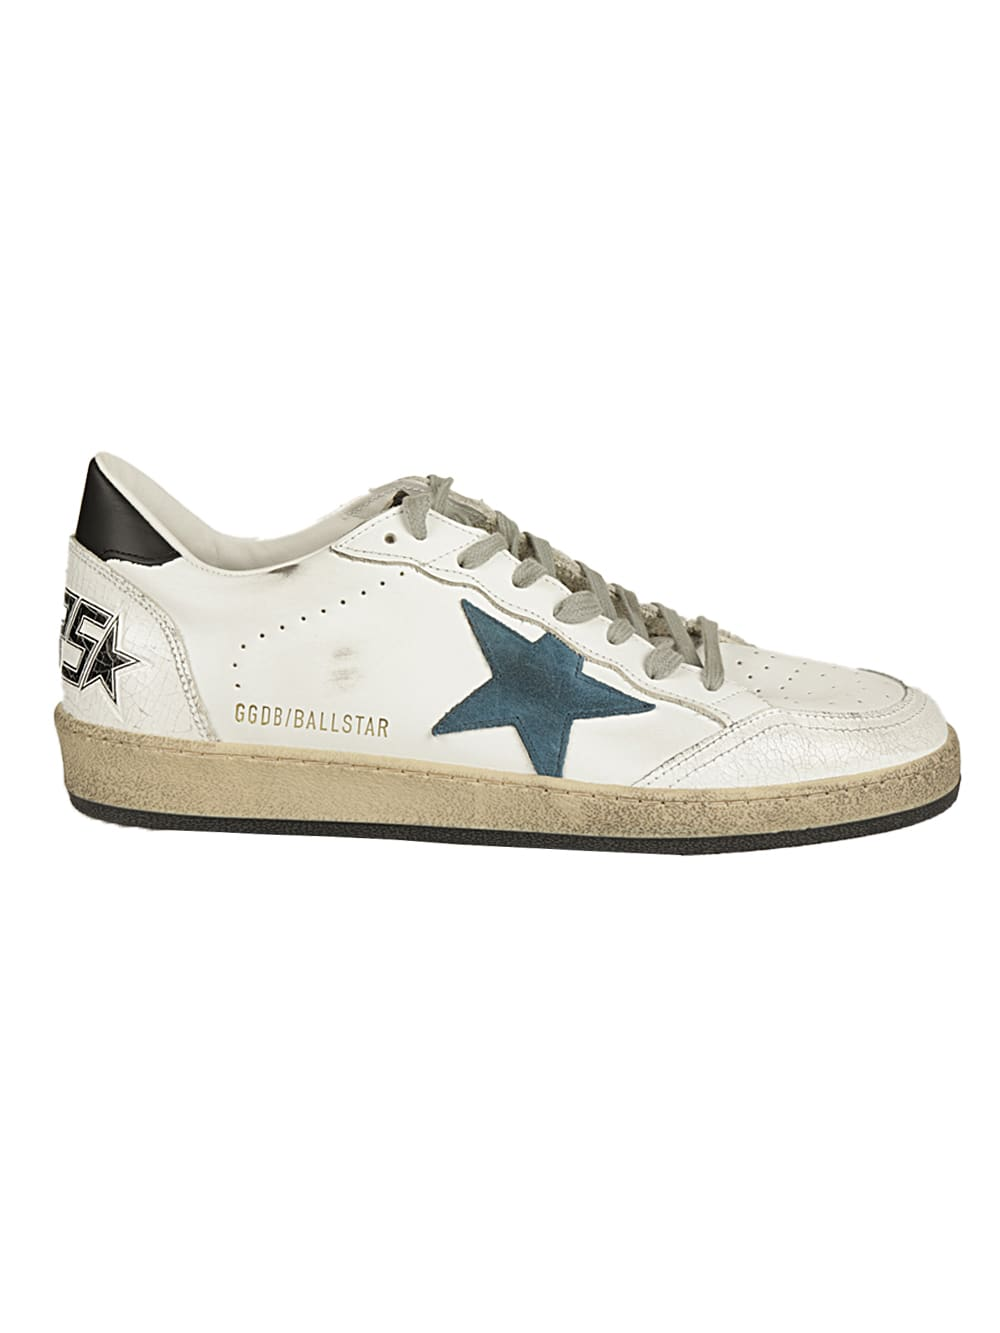 Golden Goose Leathers BALLSTAR CRACK TOE LEATHER QUARTER SUEDE STAR